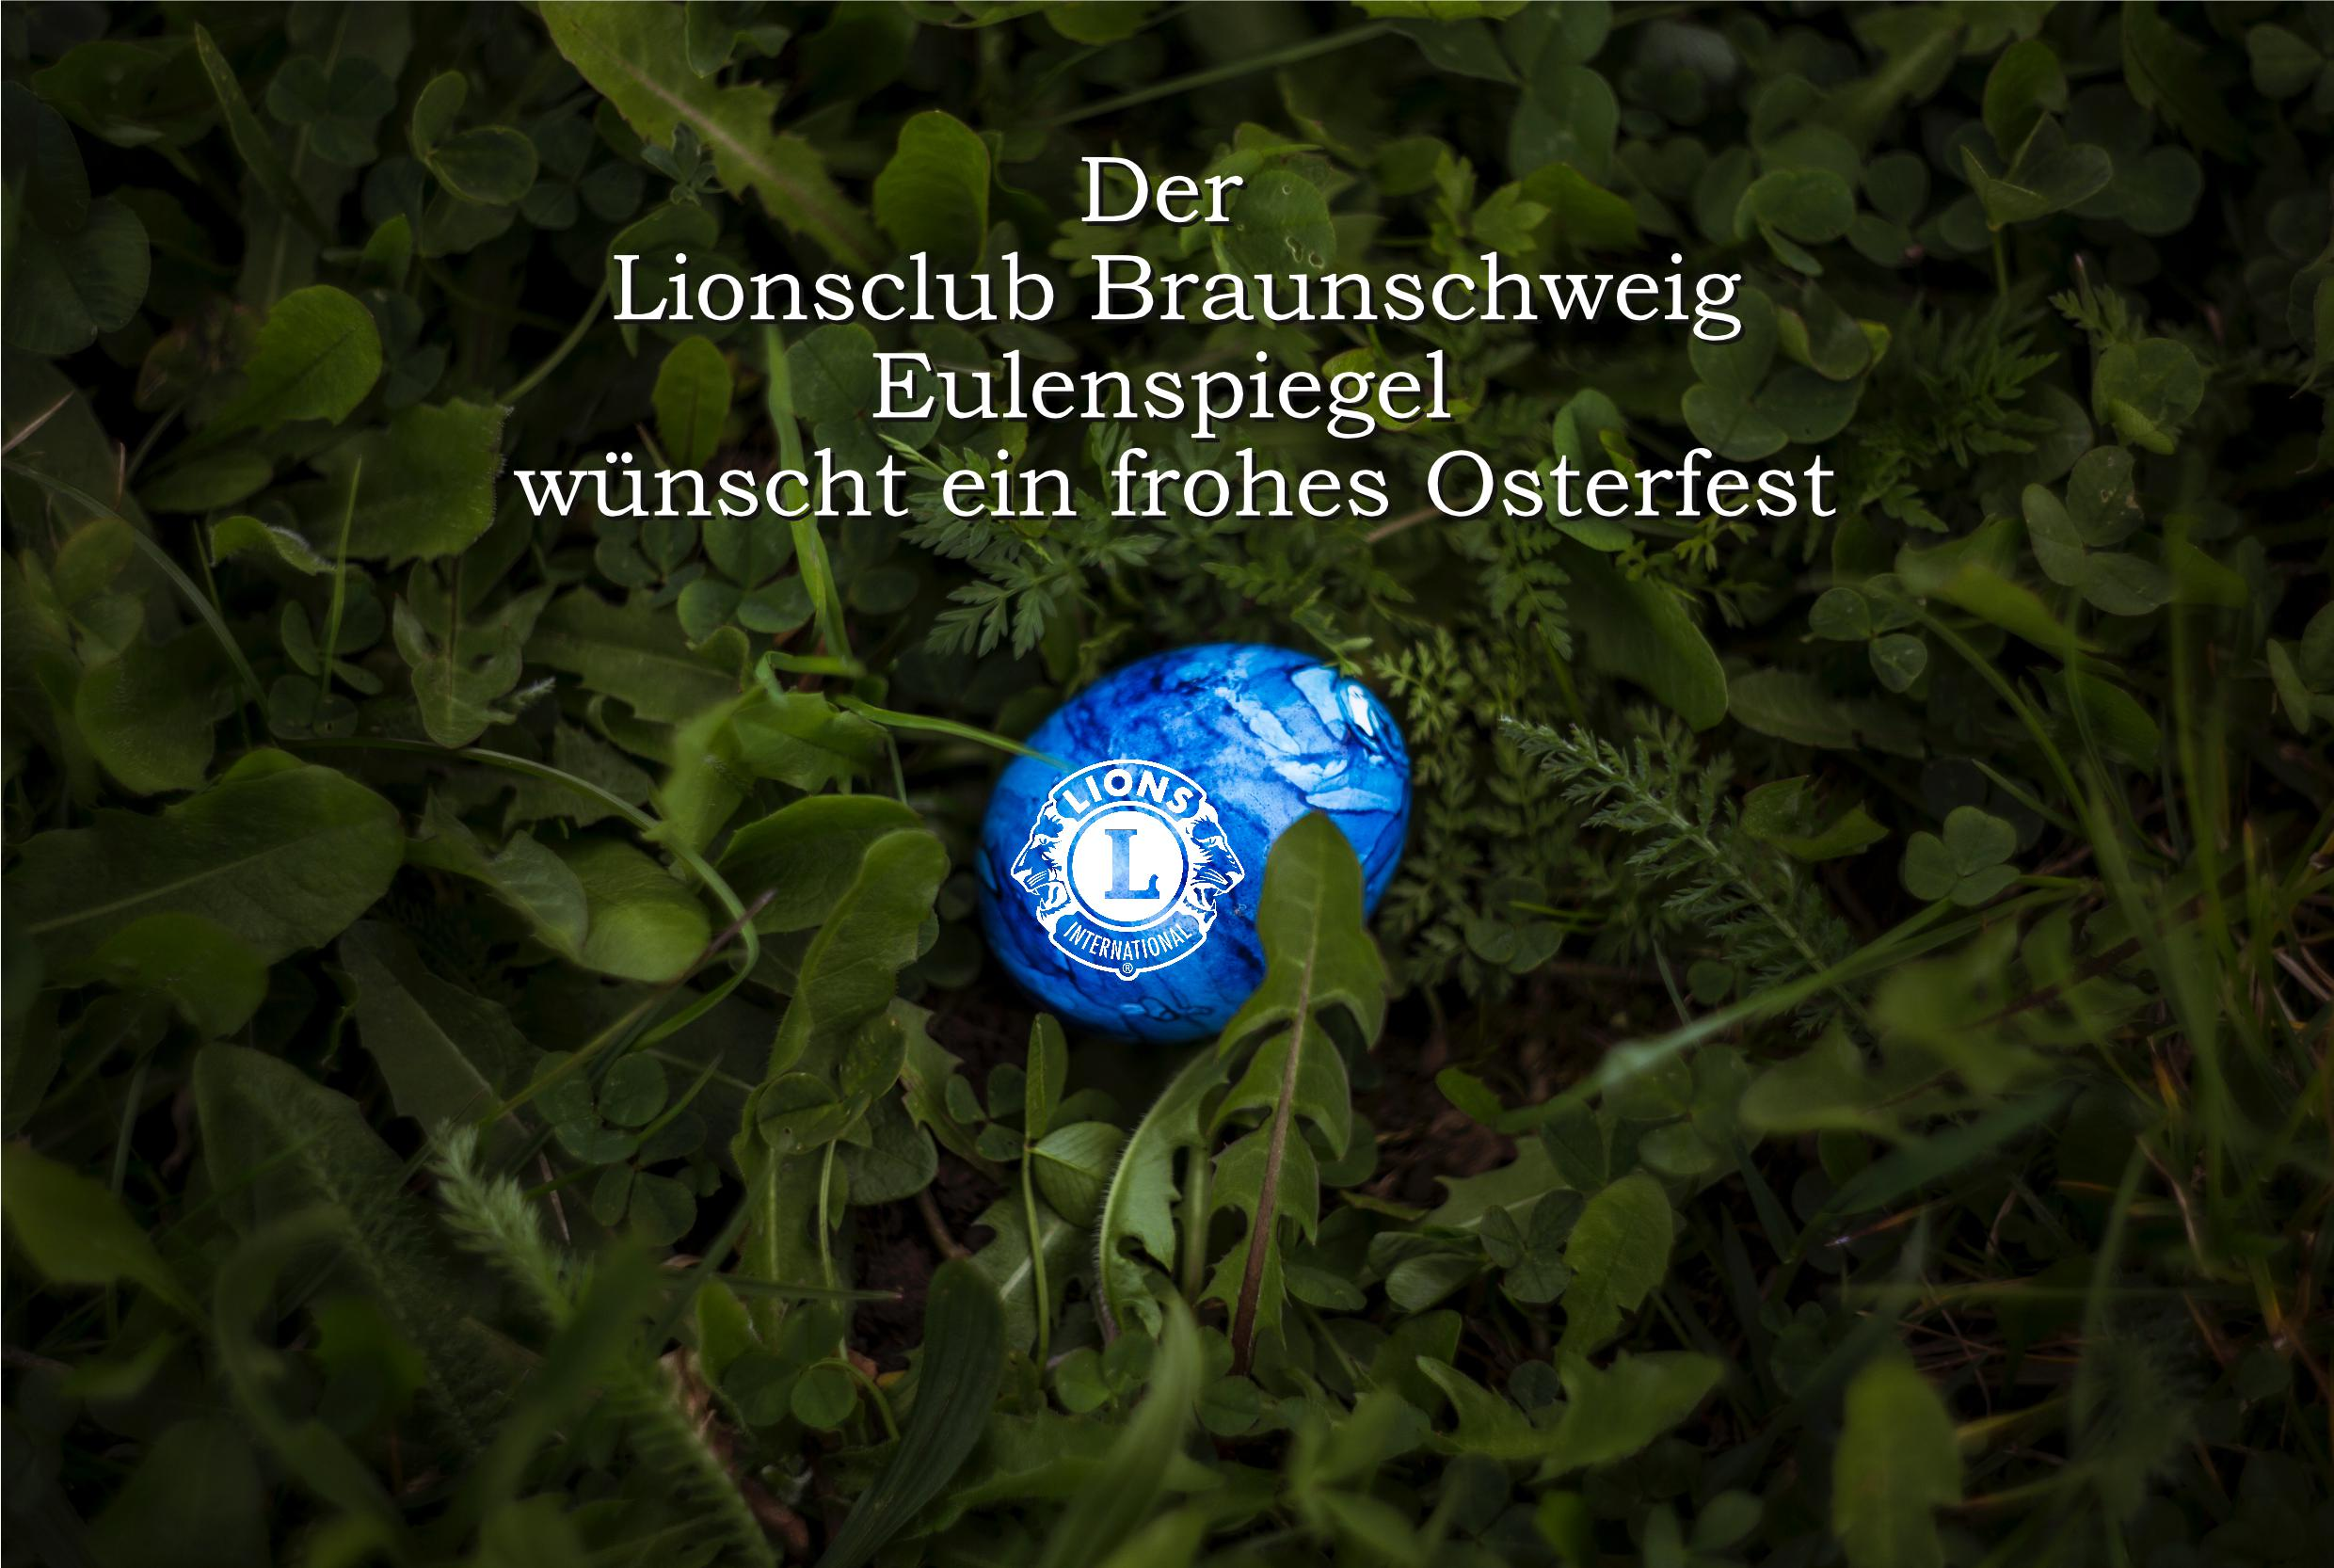 Frohe Ostern vom Lions Club Eulenspiegel